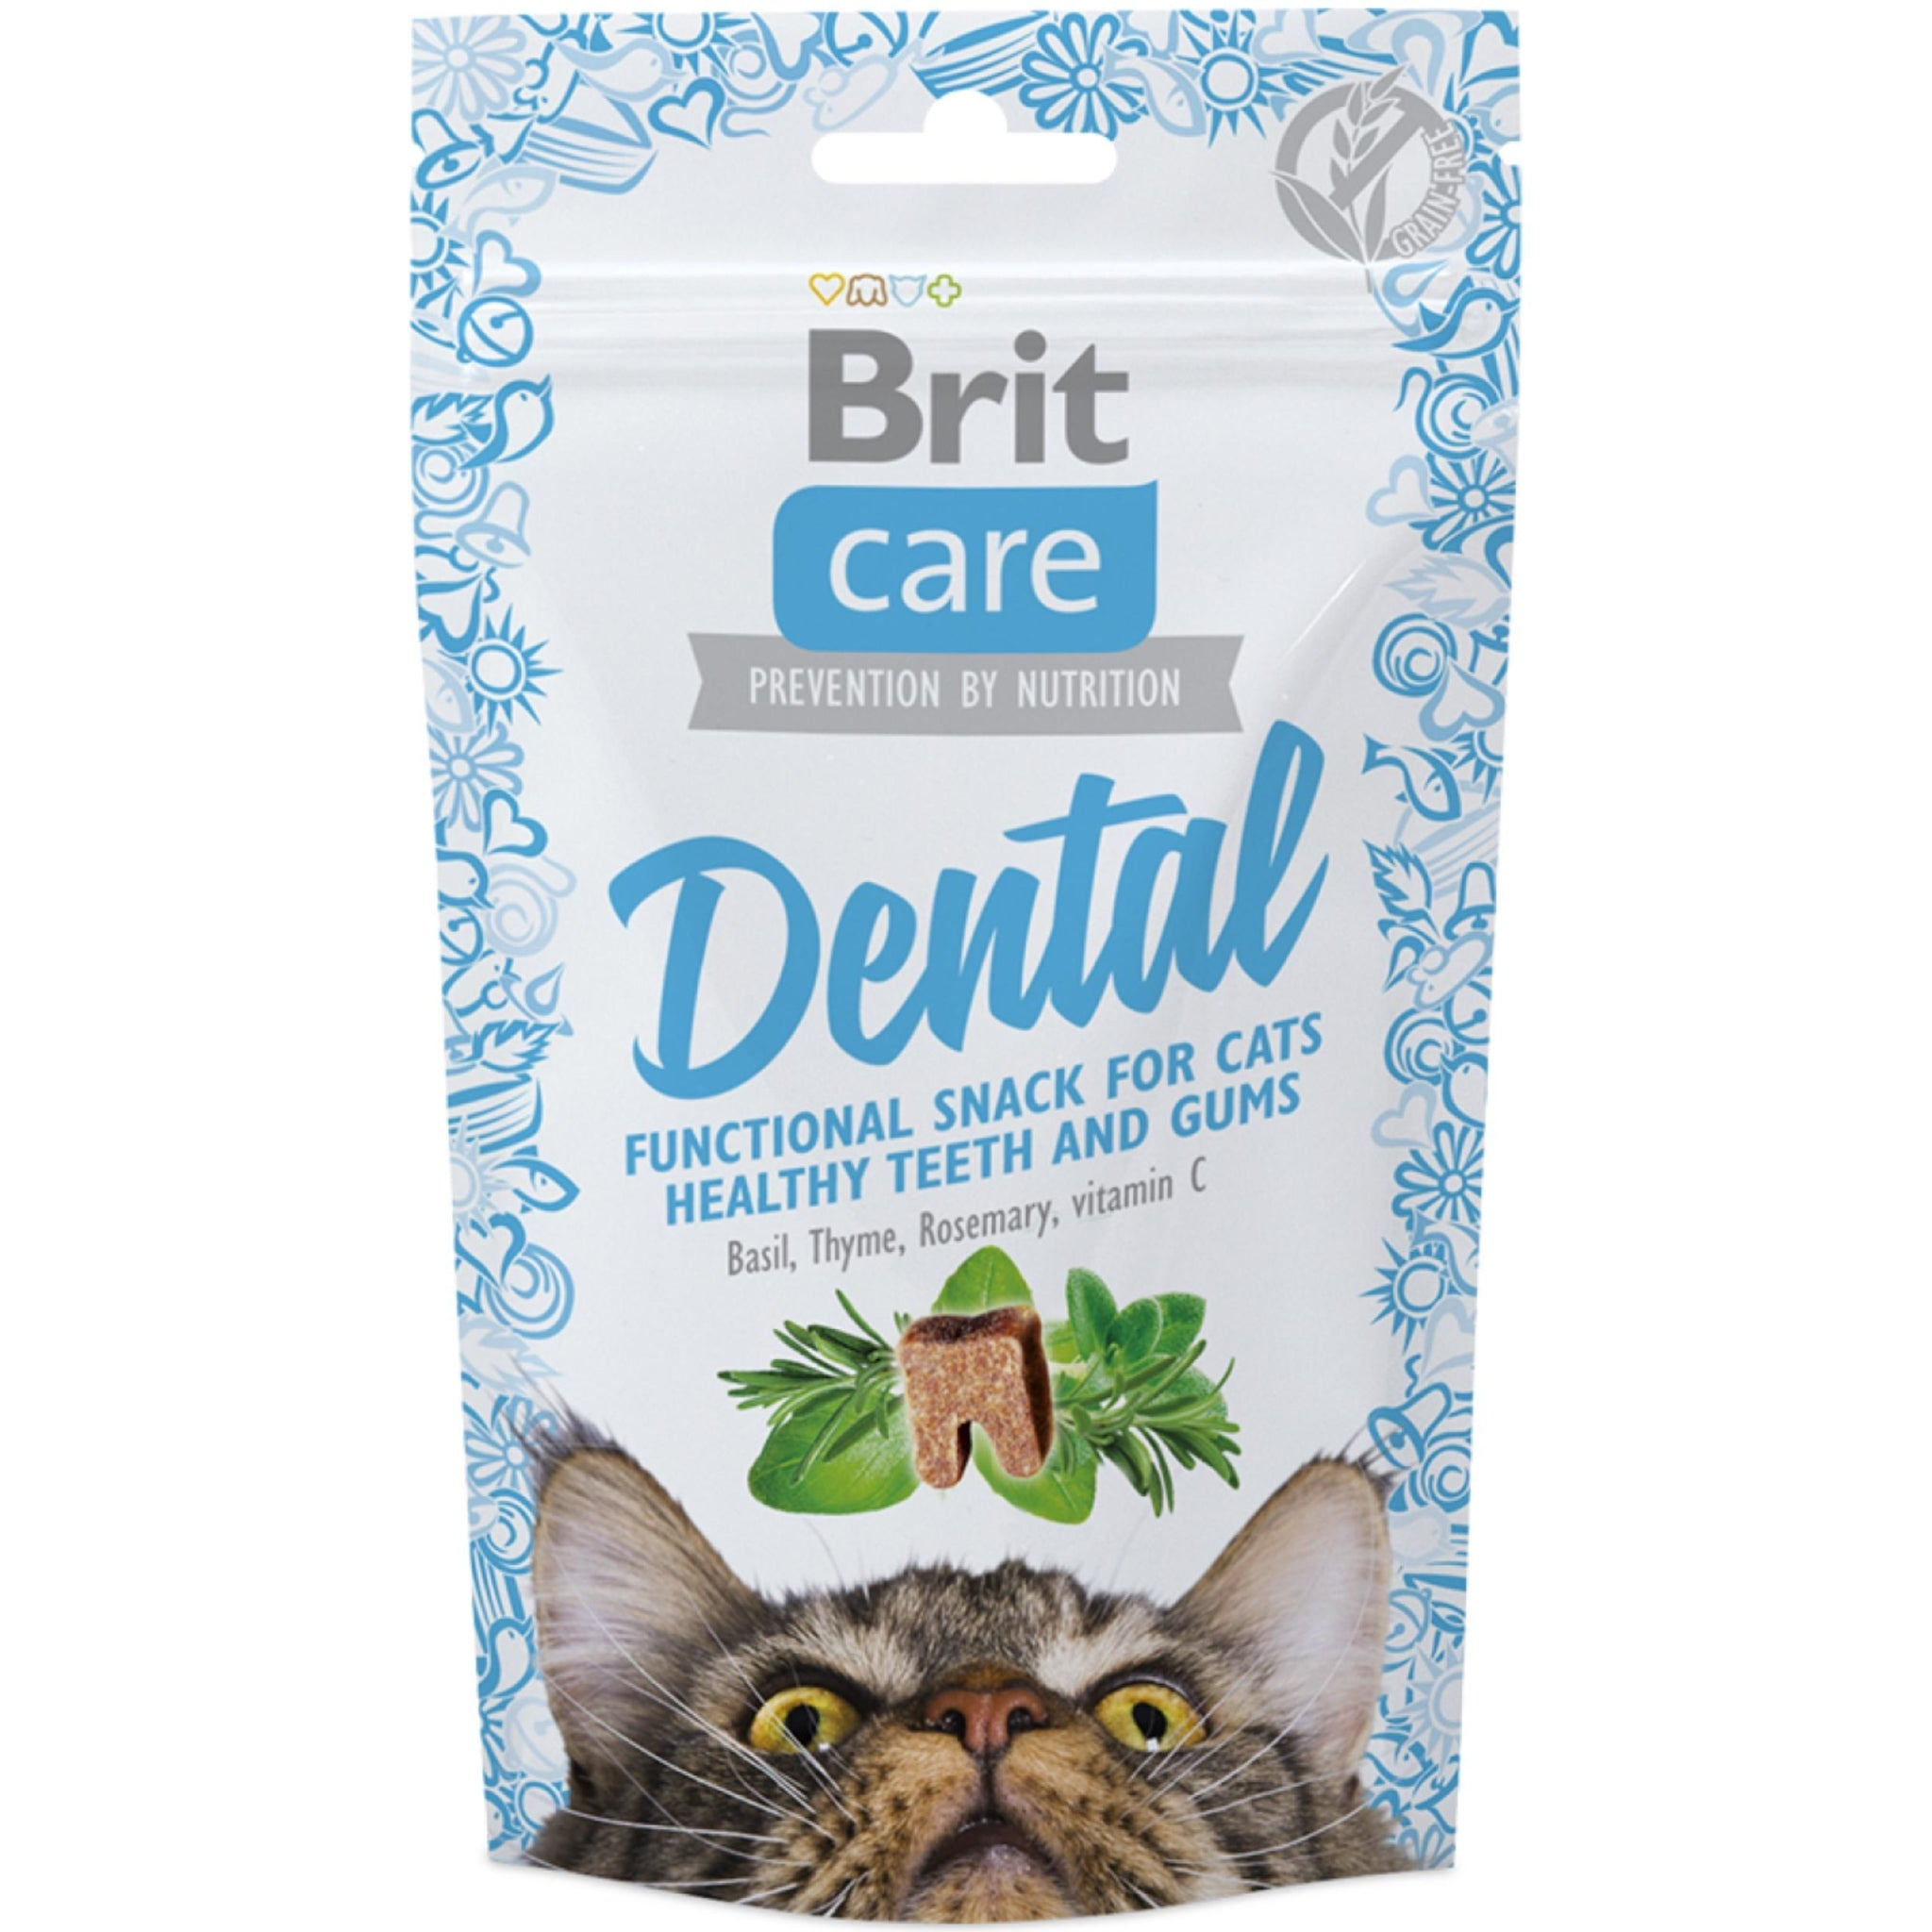 Brit Care Dental Functional Snacks for Cats- 50 g pack of 3 - Poochles